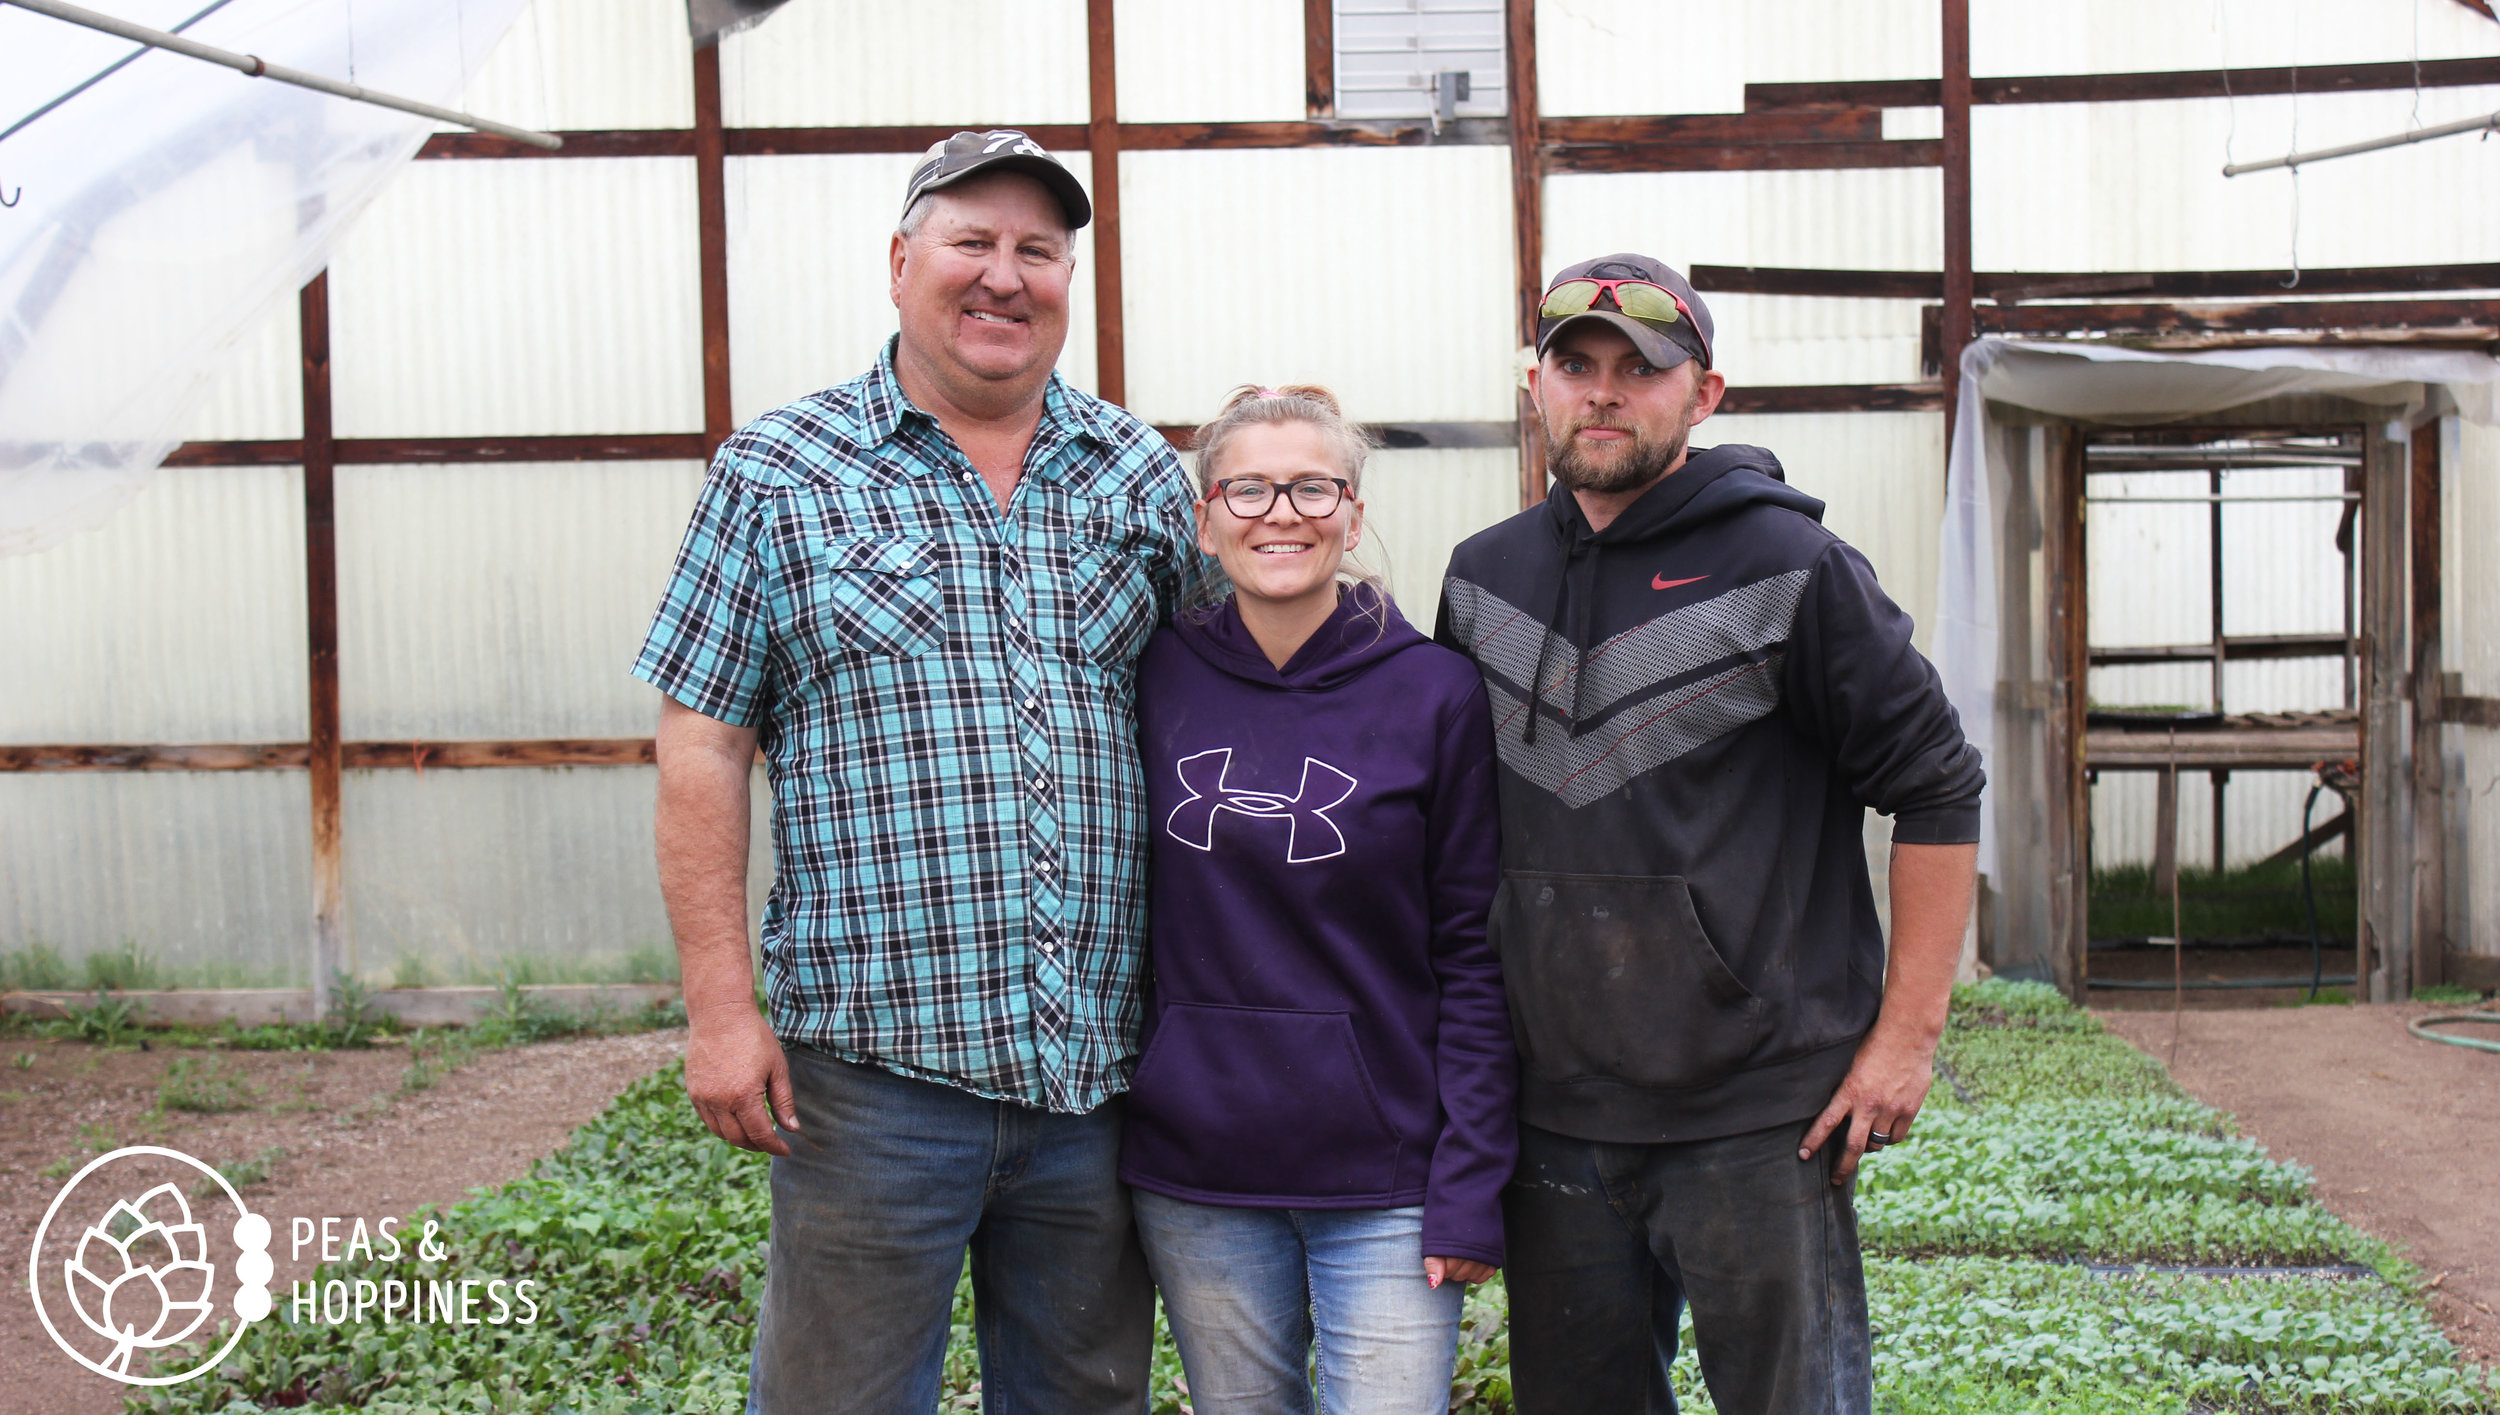 Meet Joe Miller  and future farmers Shelli & Andy. Not pictured: Joe's wife and his six other children!